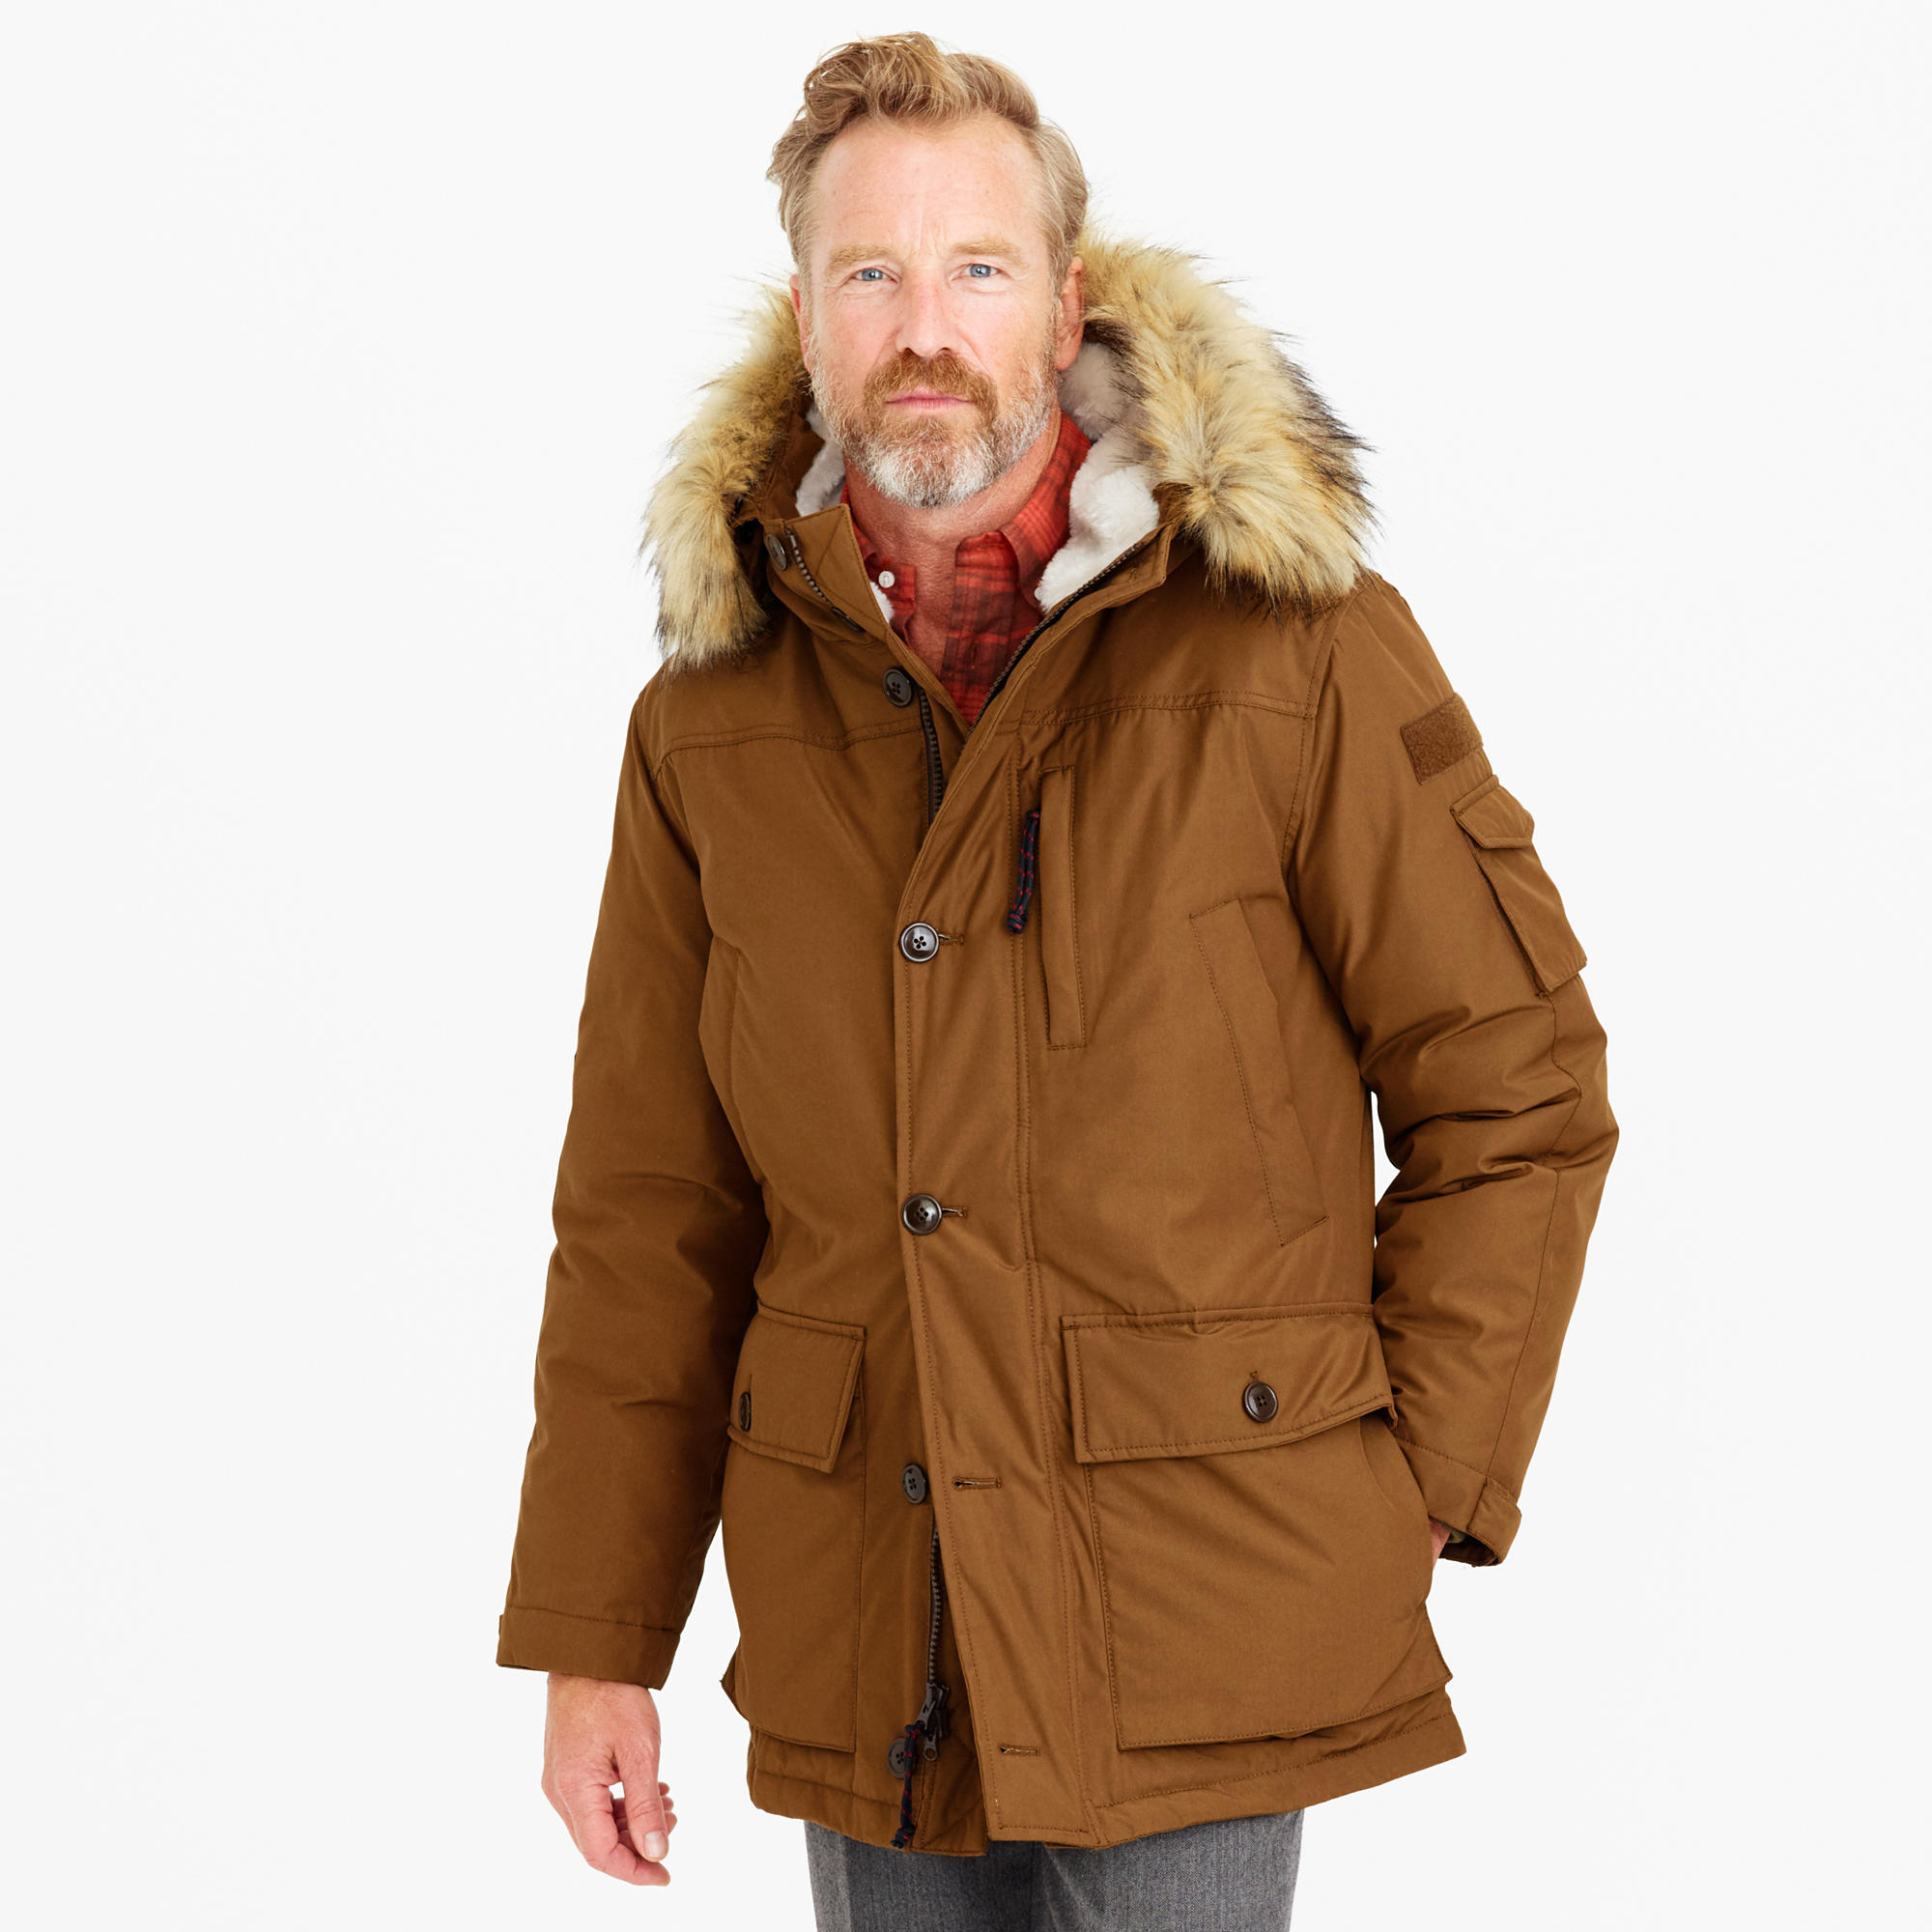 Nordic Down Parka : Men's Coats & Jackets | J.Crew